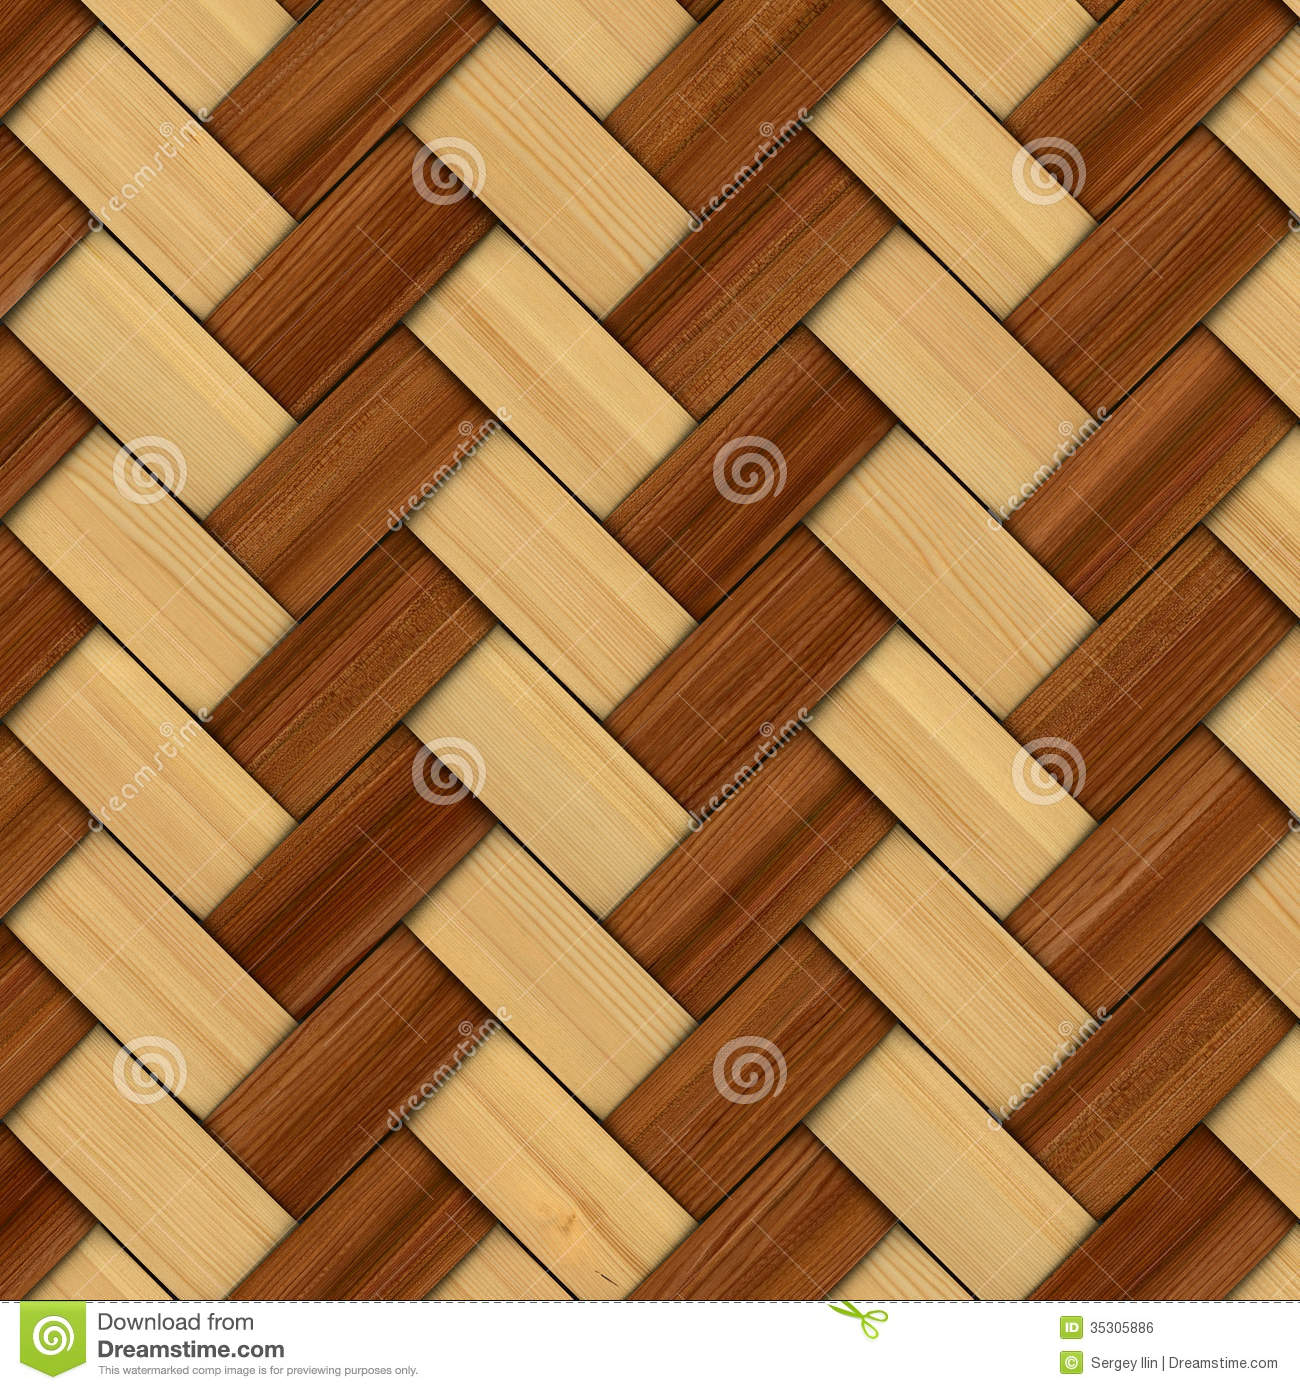 Abstract decorative wooden textured basket weaving